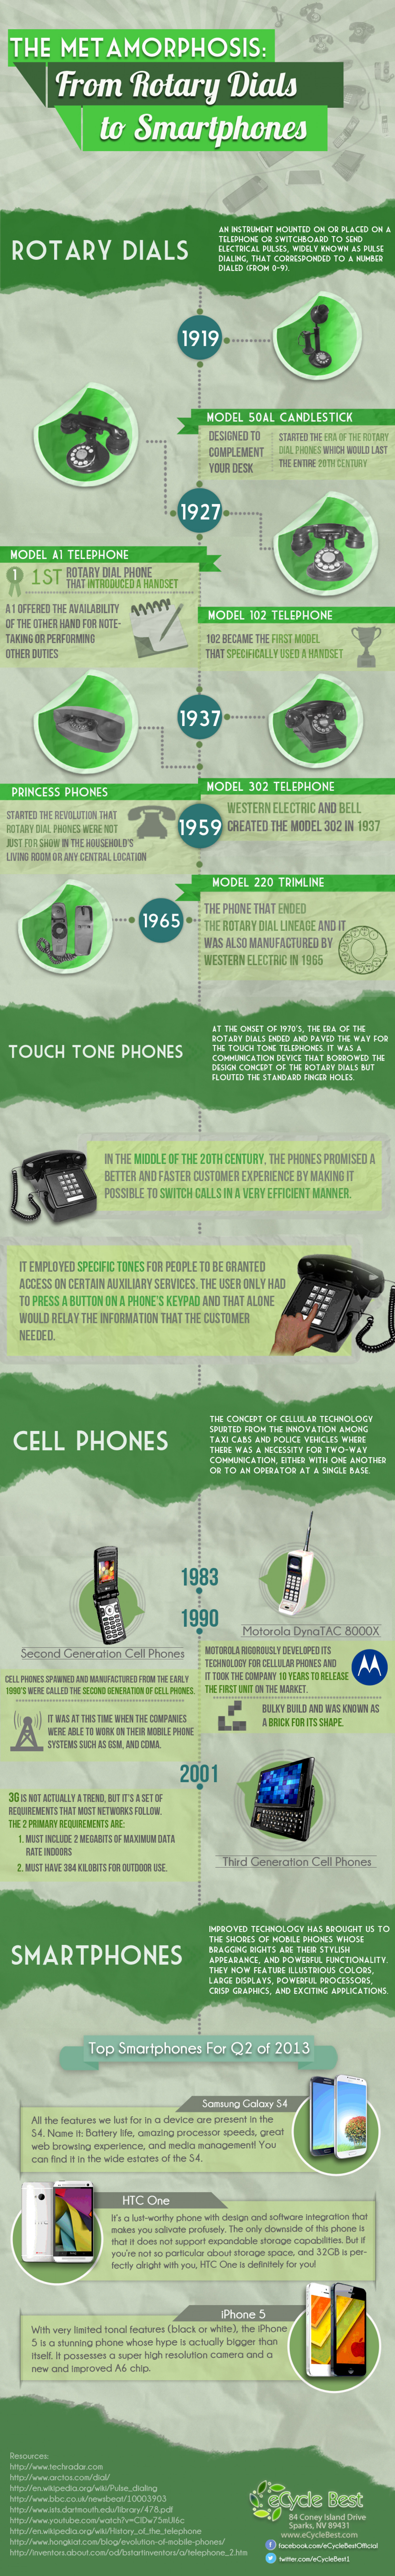 The Metamorphosis: From Rotary Dials to Smartphones Infographic